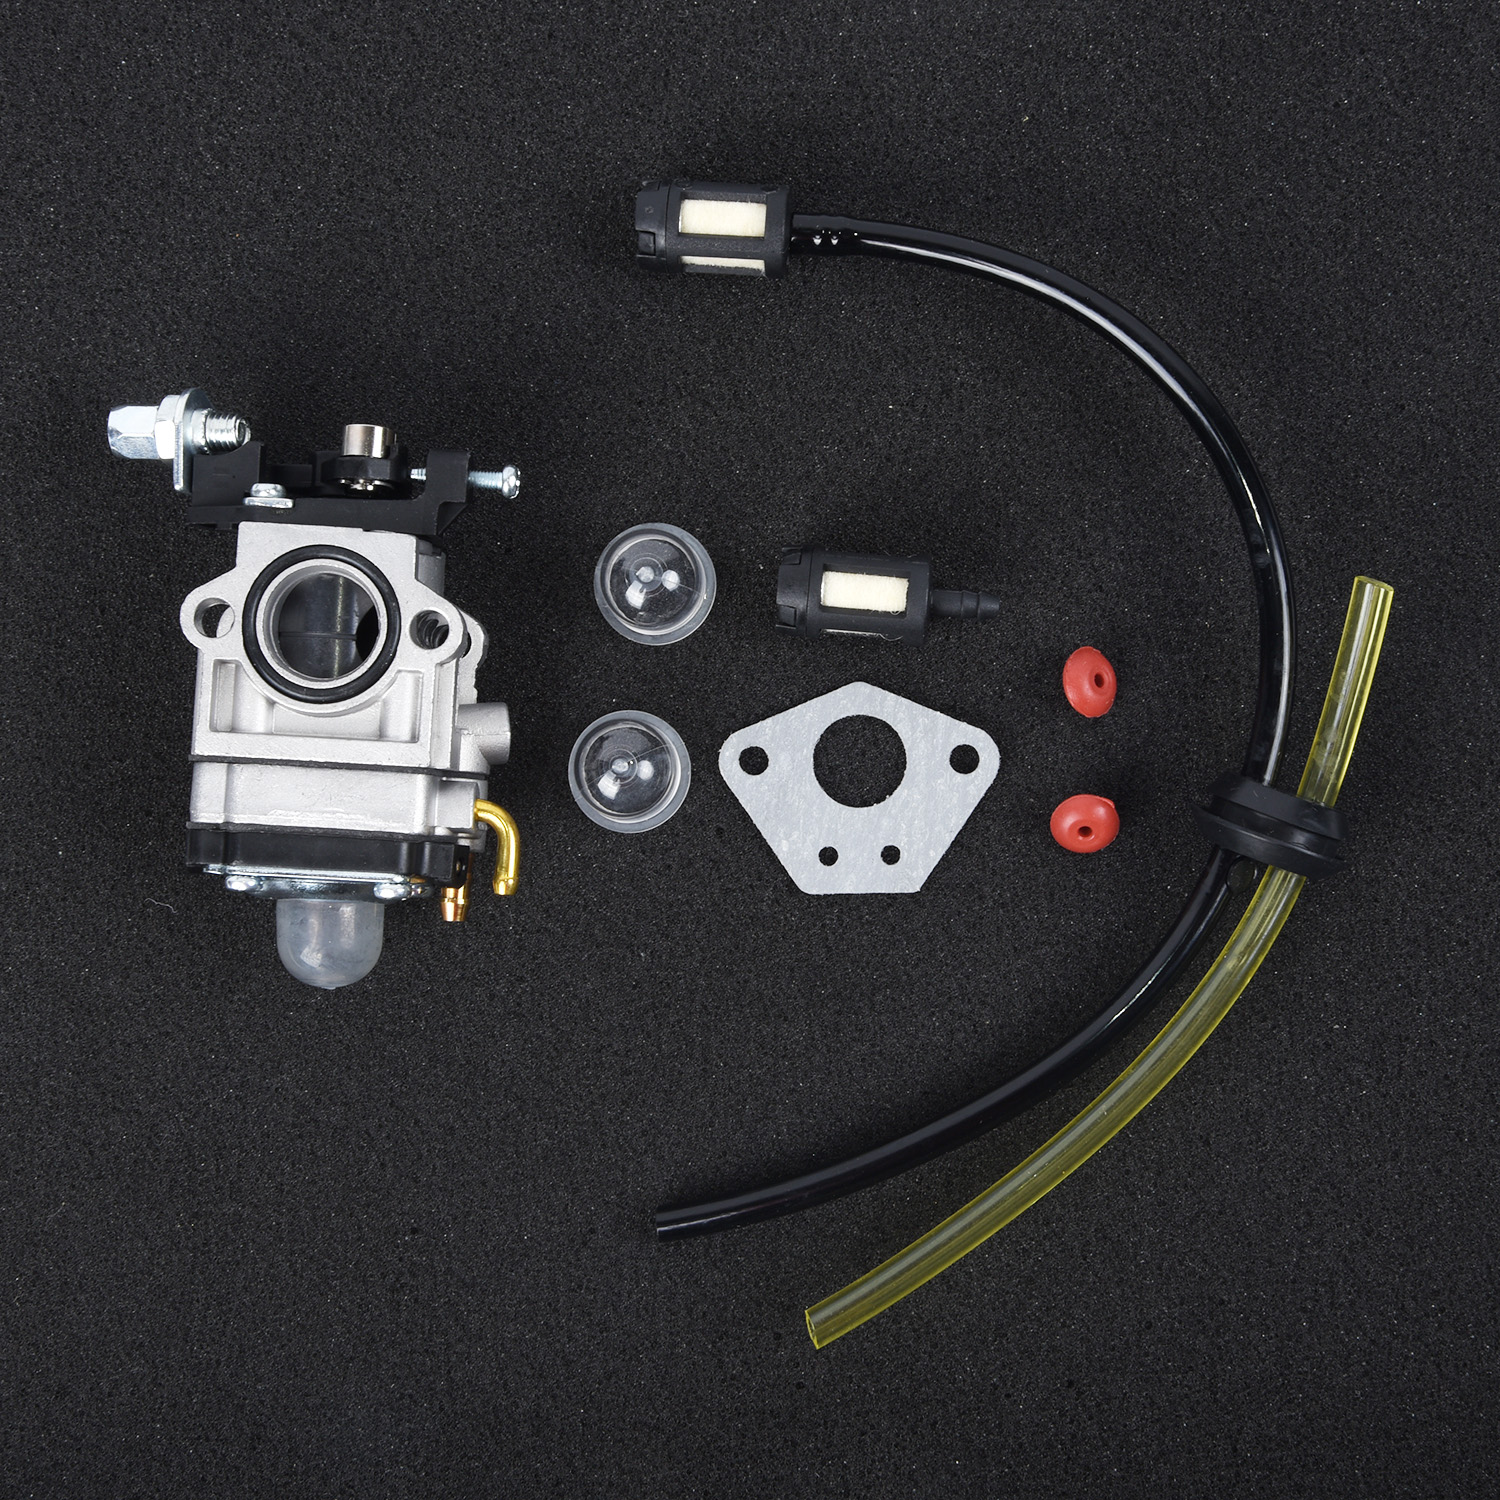 15mm Carburetor Kit For Various Strimmer Hedge Trimmer Brush Cutter Chainsaw Lawn Mover Parts Primer Bulb Gasket Fuel Filter